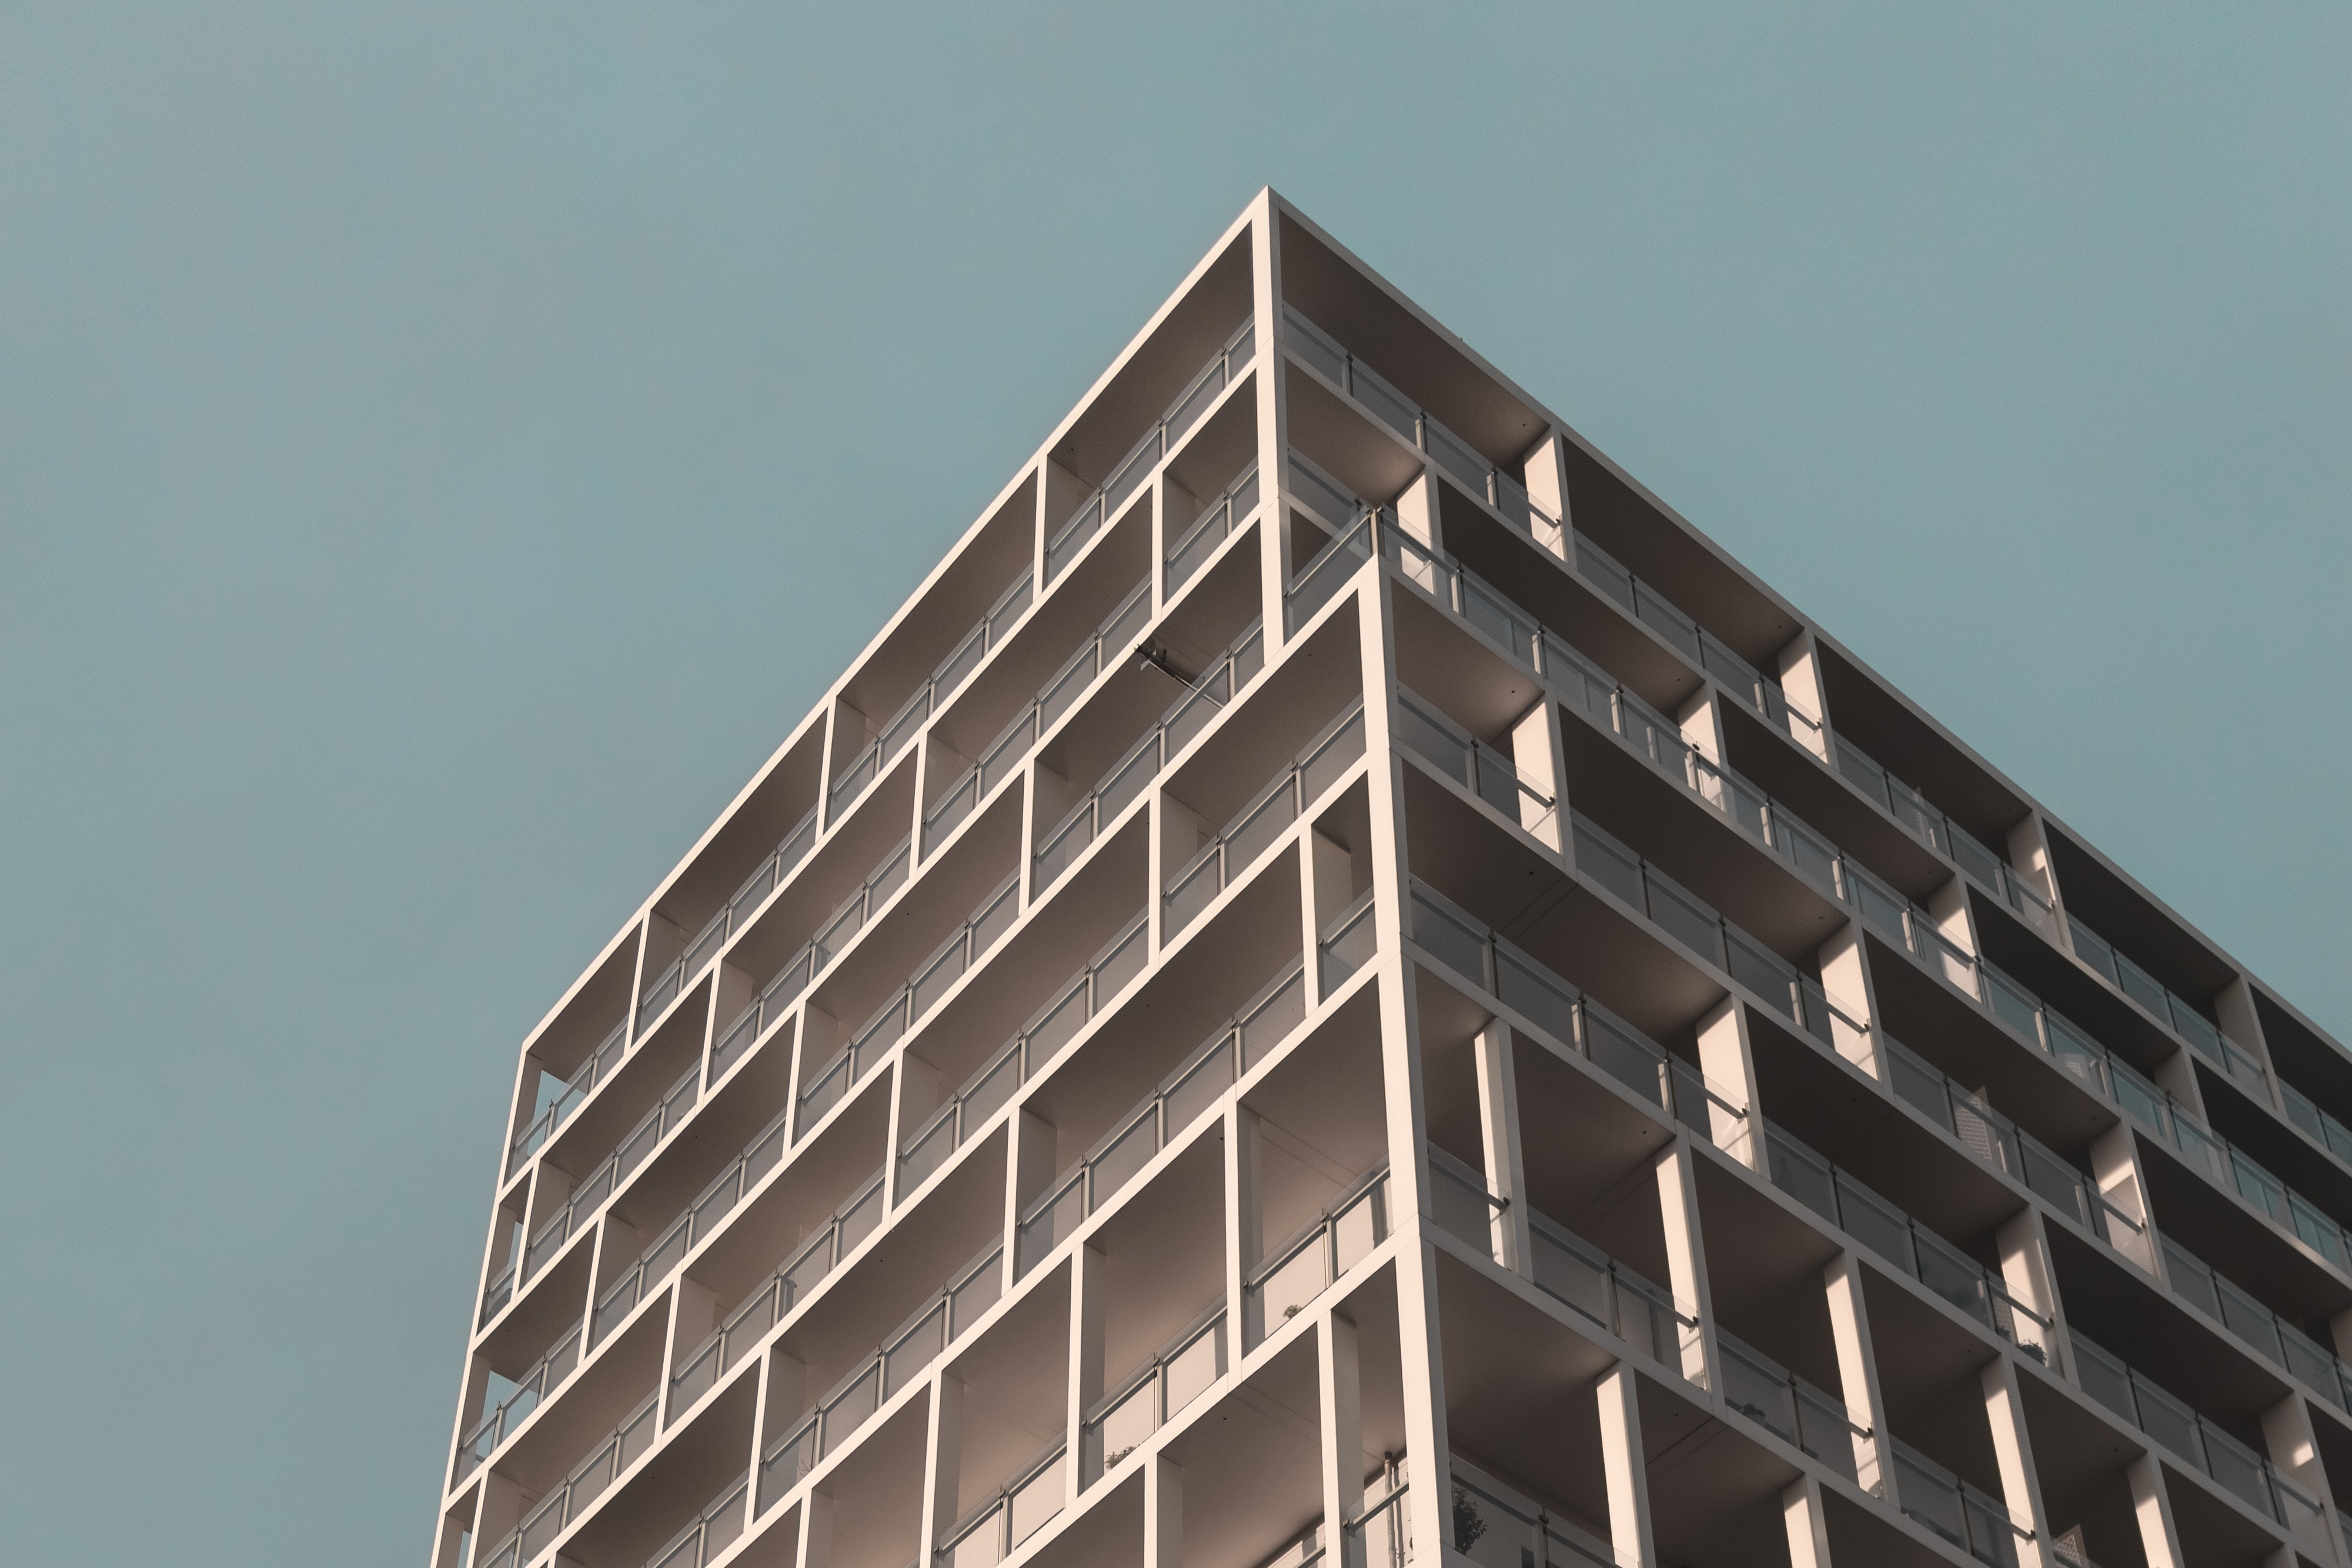 bottom view of high rise building